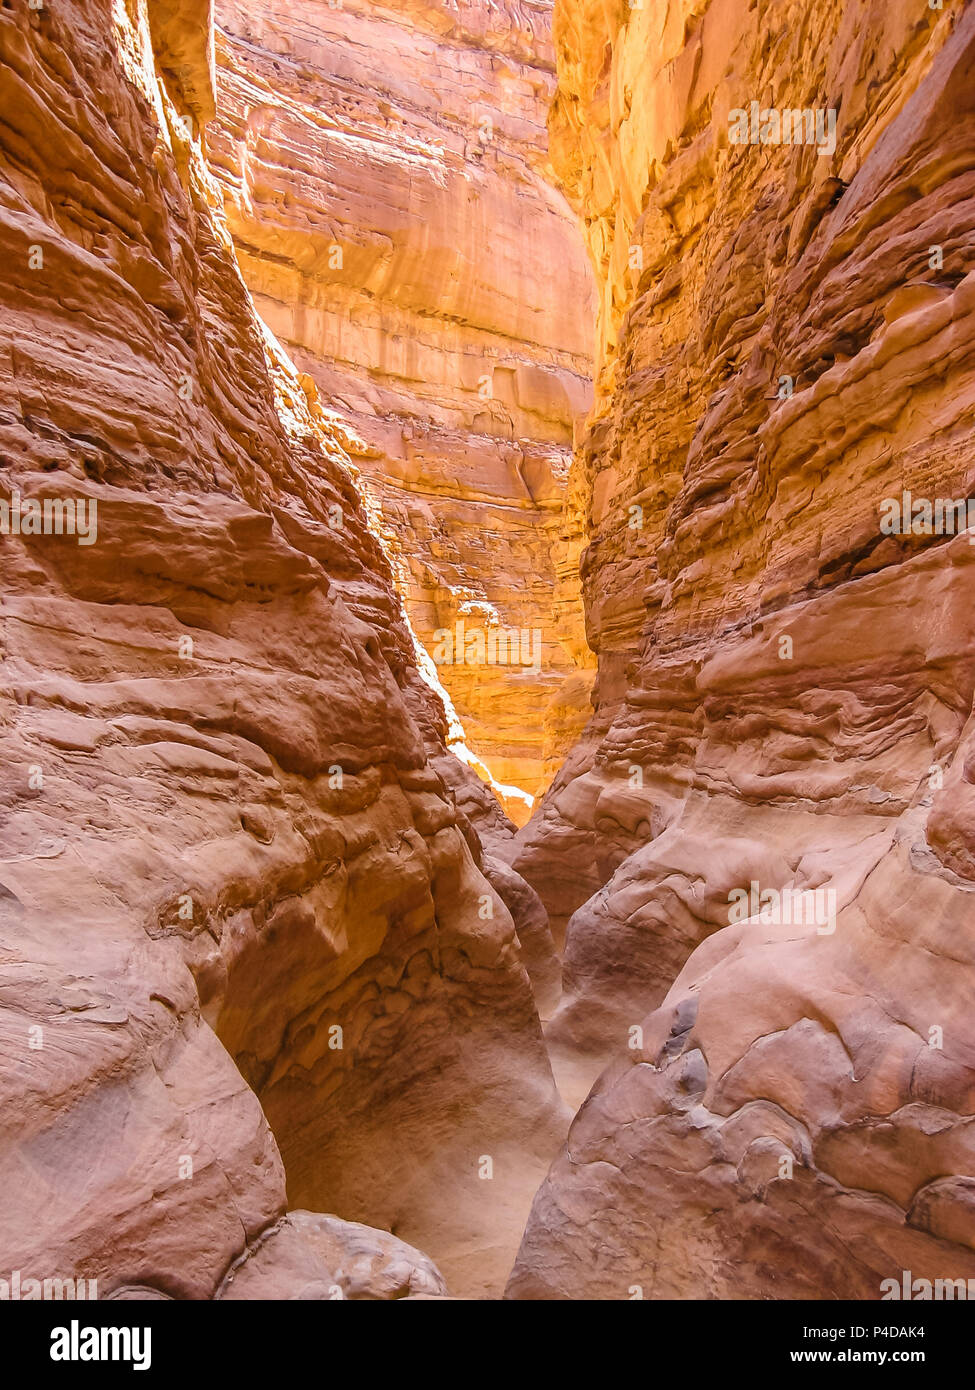 Spectacular deep gorge of Colored Canyon, near Mount Sinai and Nuweiba, Sinai Peninsula in Egypt. - Stock Image